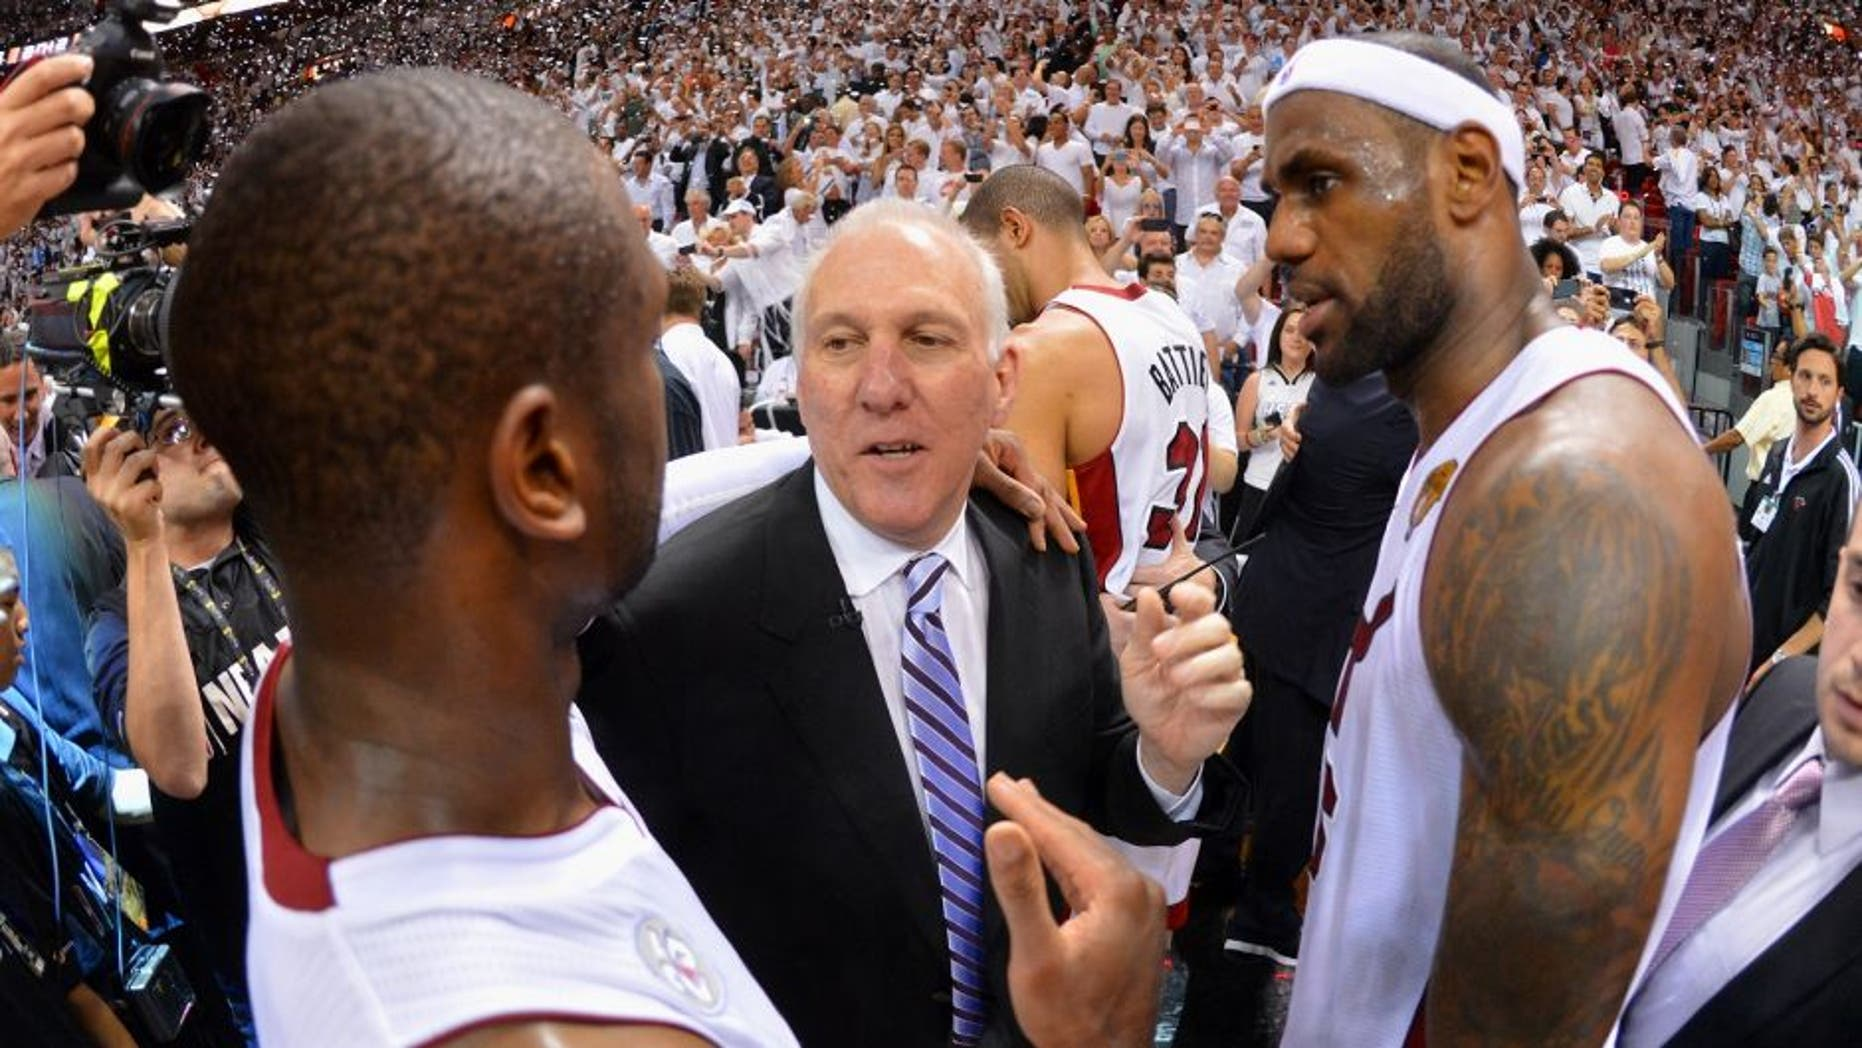 MIAMI, FL - JUNE 20: Gregg Popovich of the San Antonio Spurs congratulates Dwyane Wade #3 and LeBron James #6 of the Miami Heat in Game Seven of the 2013 NBA Finals on June 20, 2013 at American Airlines Arena in Miami, Florida. NOTE TO USER: User expressly acknowledges and agrees that, by downloading and or using this photograph, User is consenting to the terms and conditions of the Getty Images License Agreement. Mandatory Copyright Notice: Copyright 2013 NBAE (Photo by Jesse D. Garrabrant/NBAE via Getty Images)